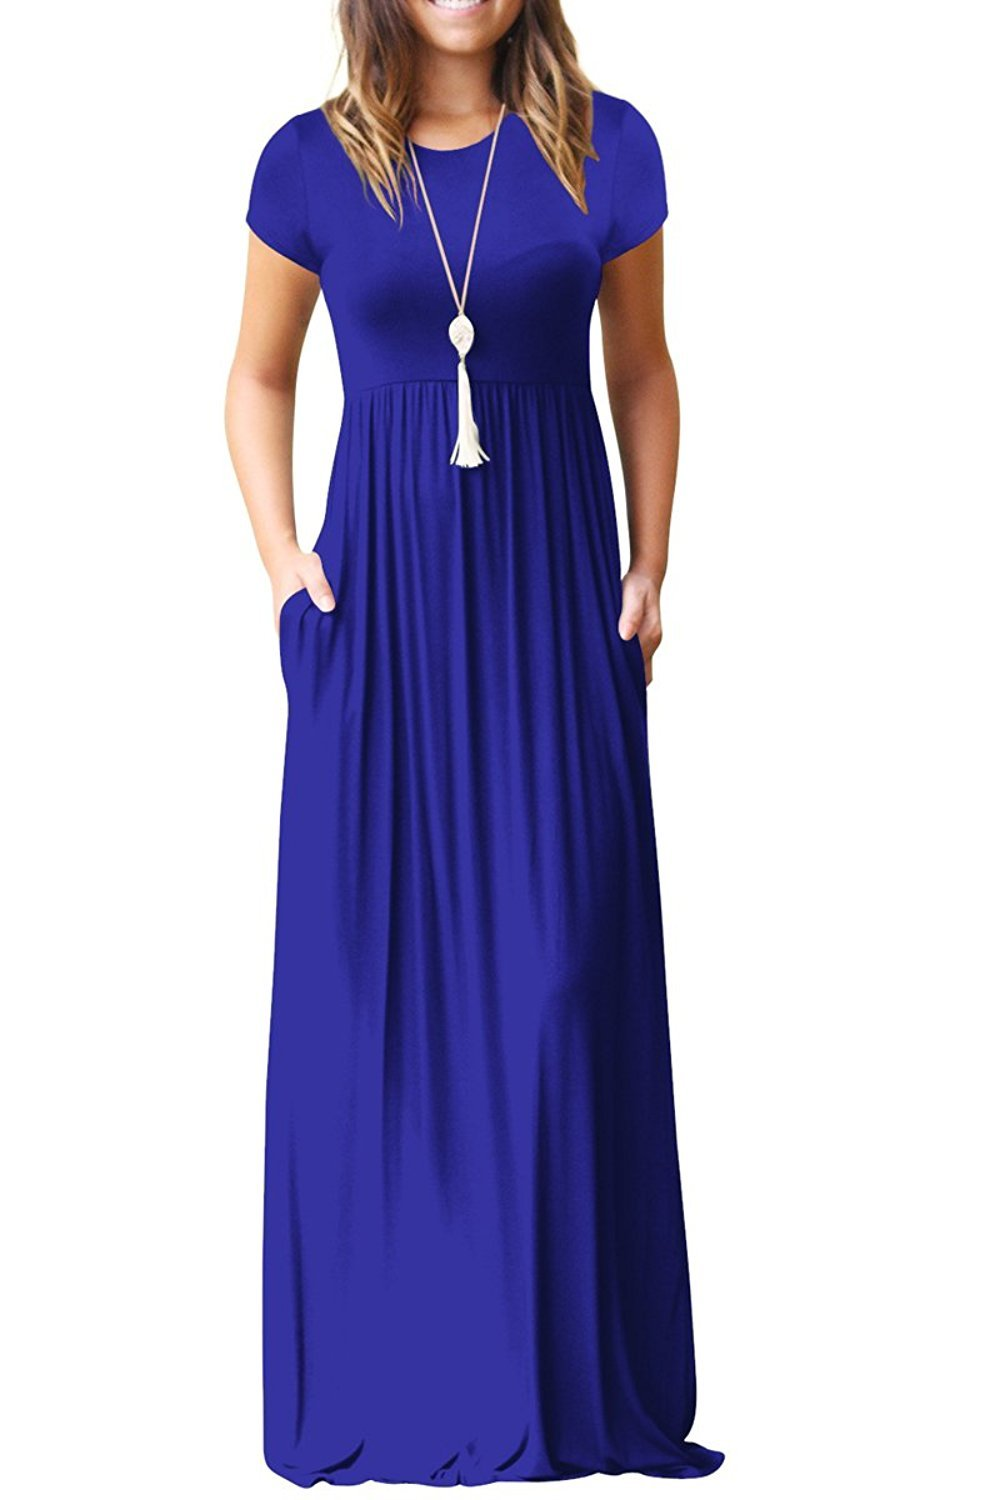 ed86e270c3b1 Viishow Women's Short Sleeve Loose Plain Maxi Dresses Casual Long Dresses  with Pockets (Royal Blue